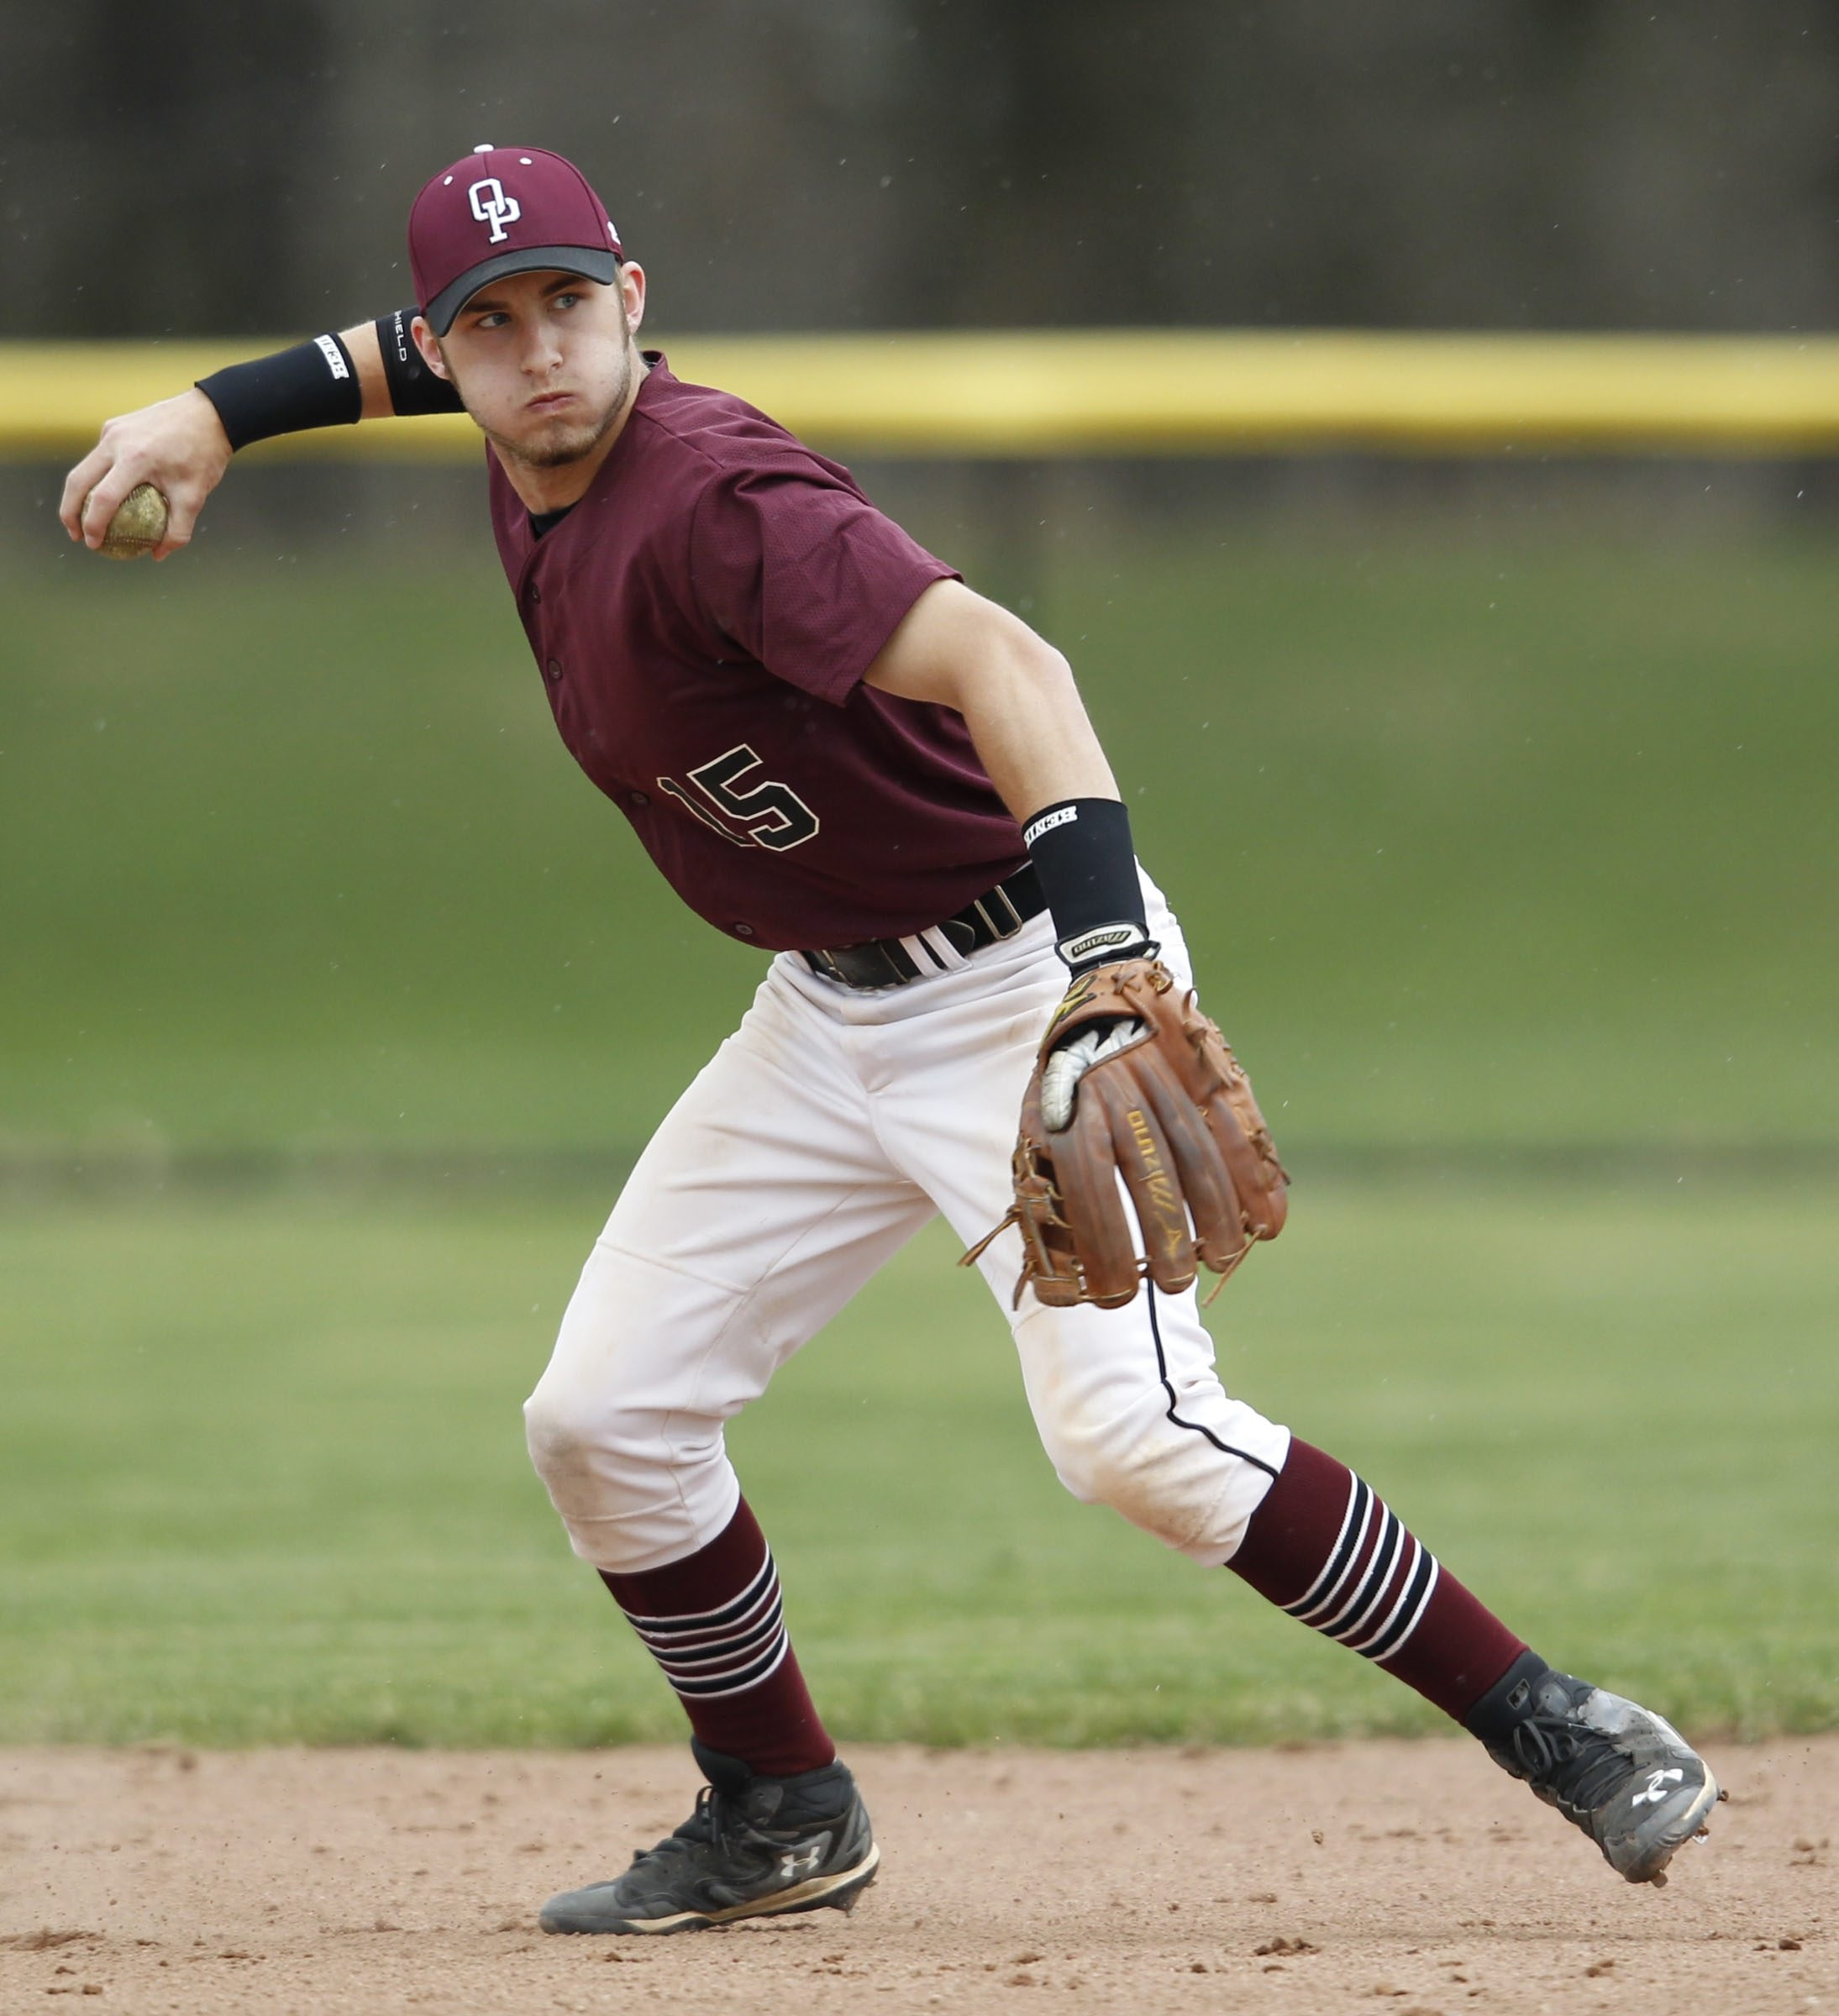 Orchard Park shortstop Dave Hollins follows in his dad's footsteps as the top baseball player in WNY.